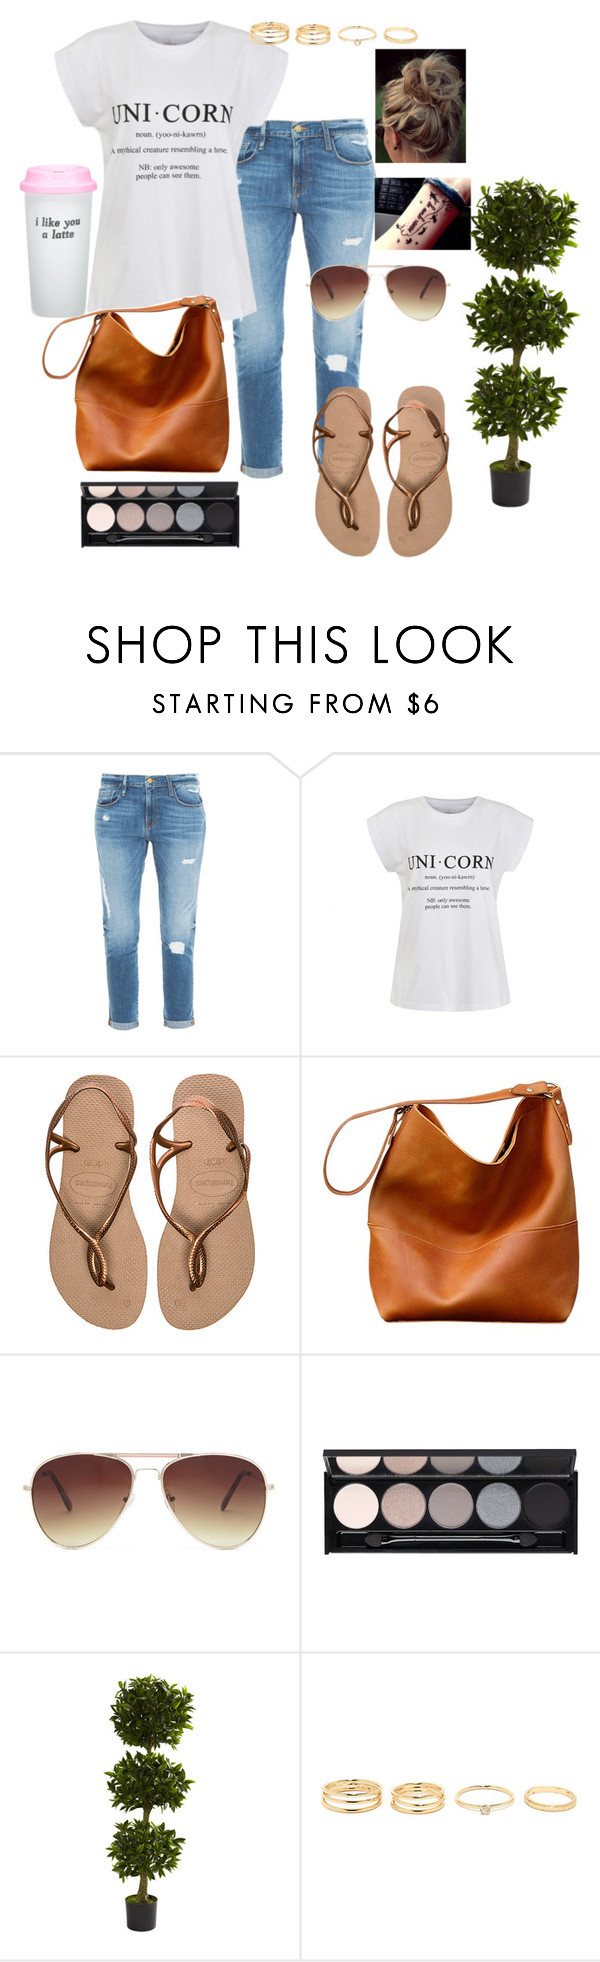 """""""Untitled #119"""" by toiees ❤ liked on Polyvore featuring Frame Denim, Ally Fashion, Havaianas, Forever 21, Witchery, Nearly Natural, Bow & Drape, women's clothing, women and female"""